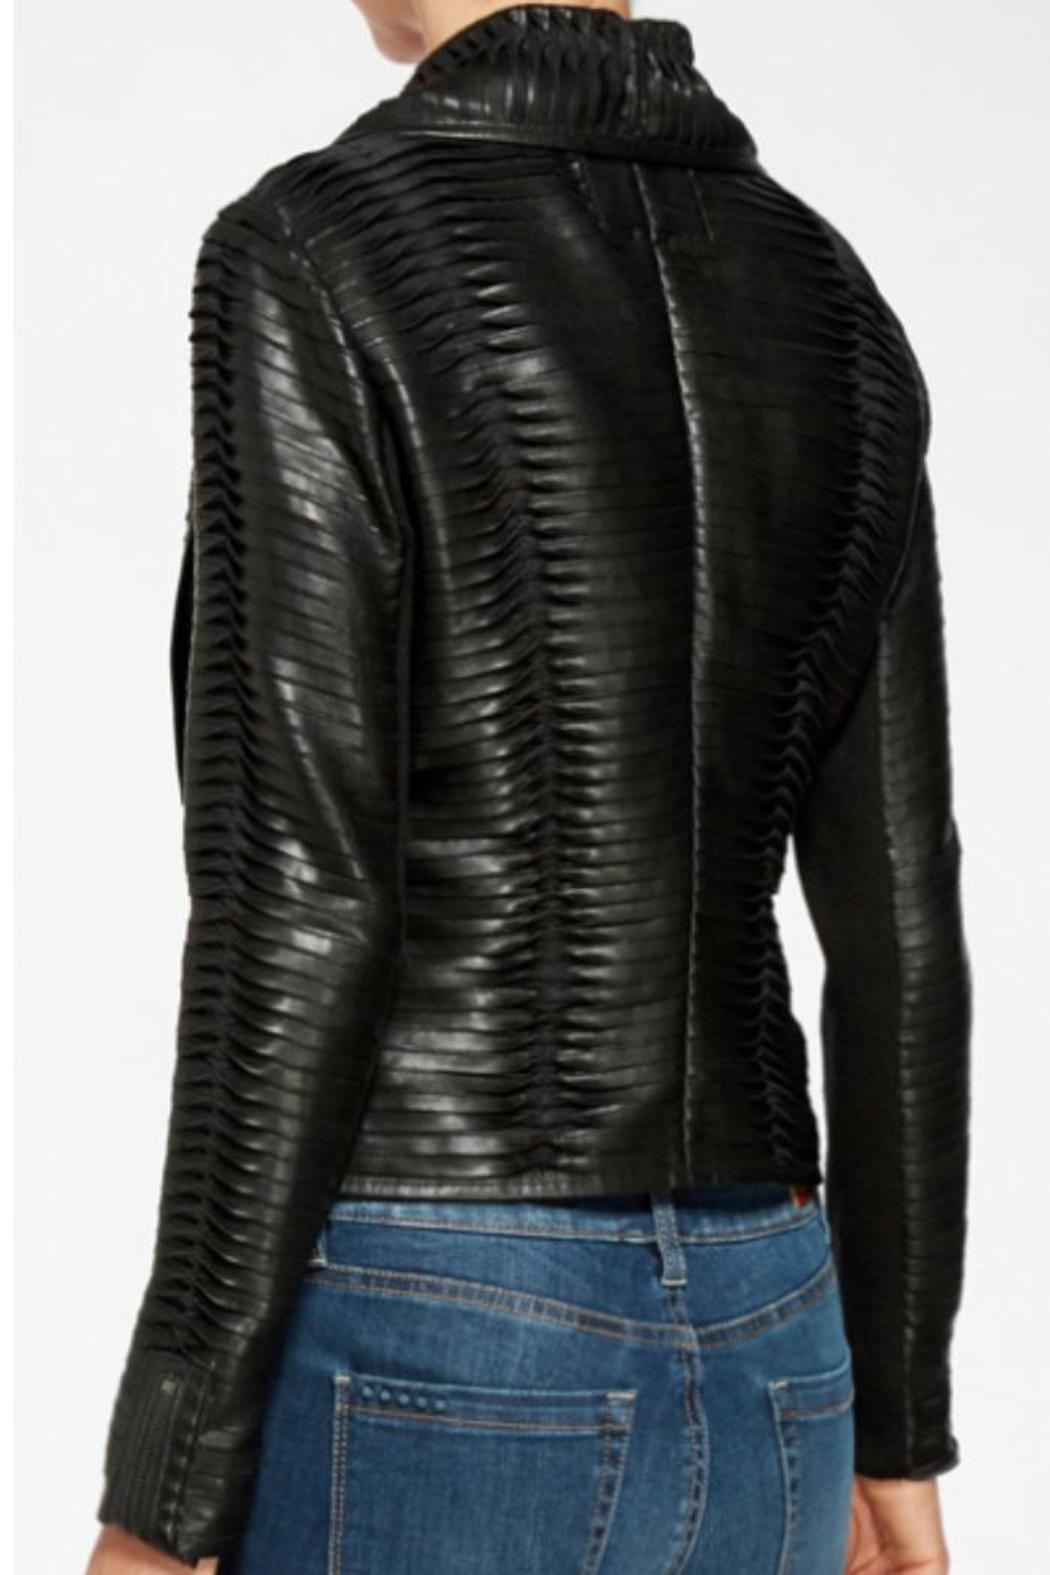 how to clean vegan leather jacket